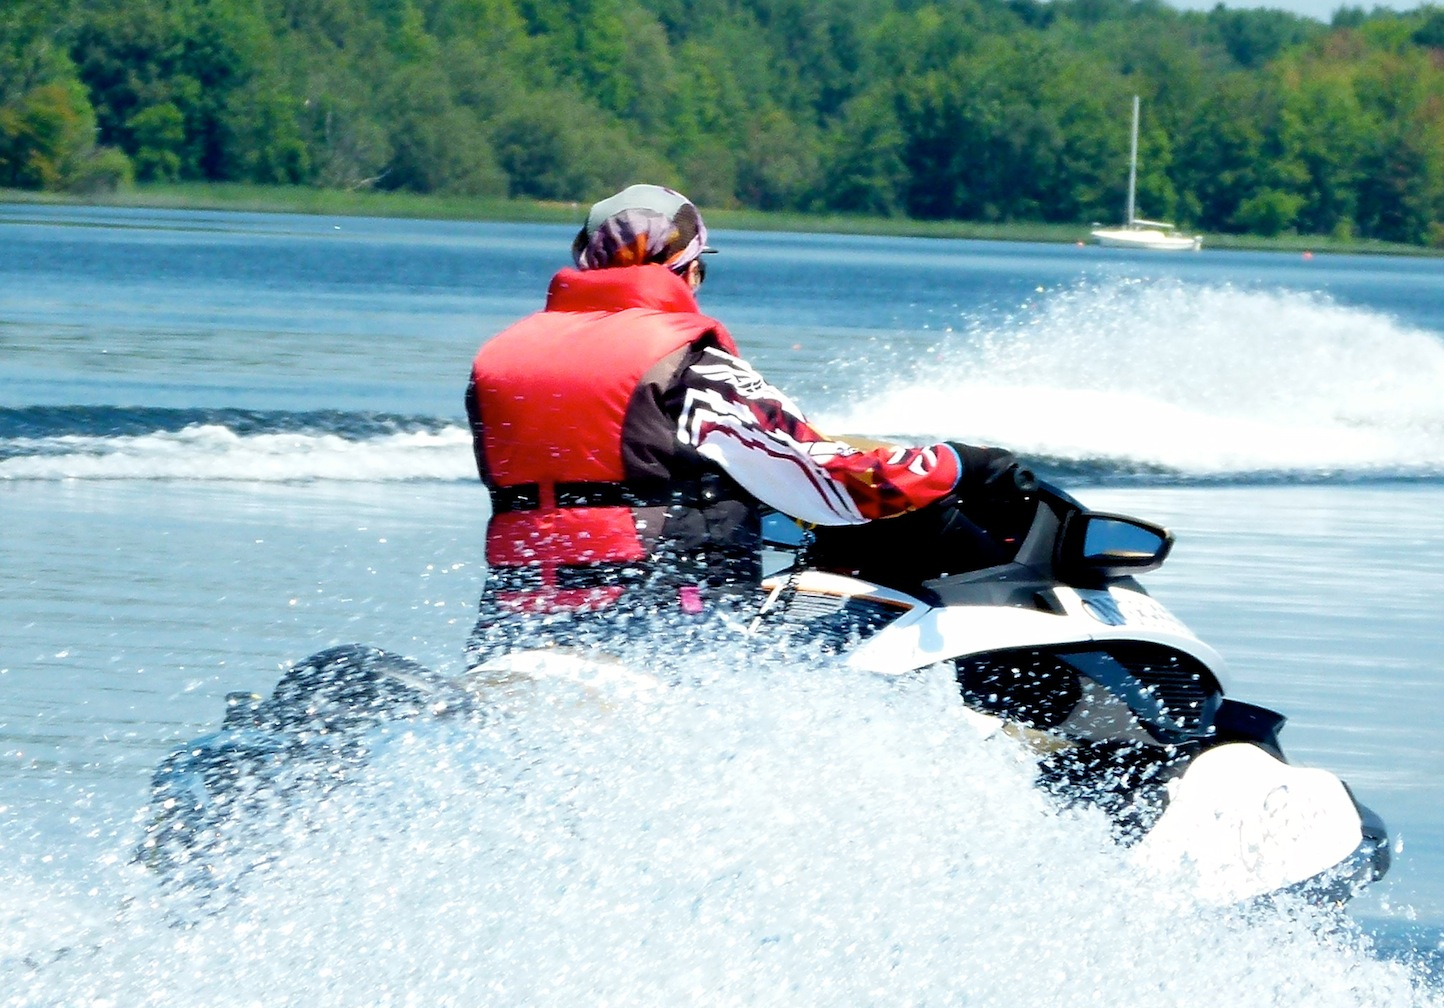 Jet Ski Riding Accessories Wish List For Sea Doo Tours